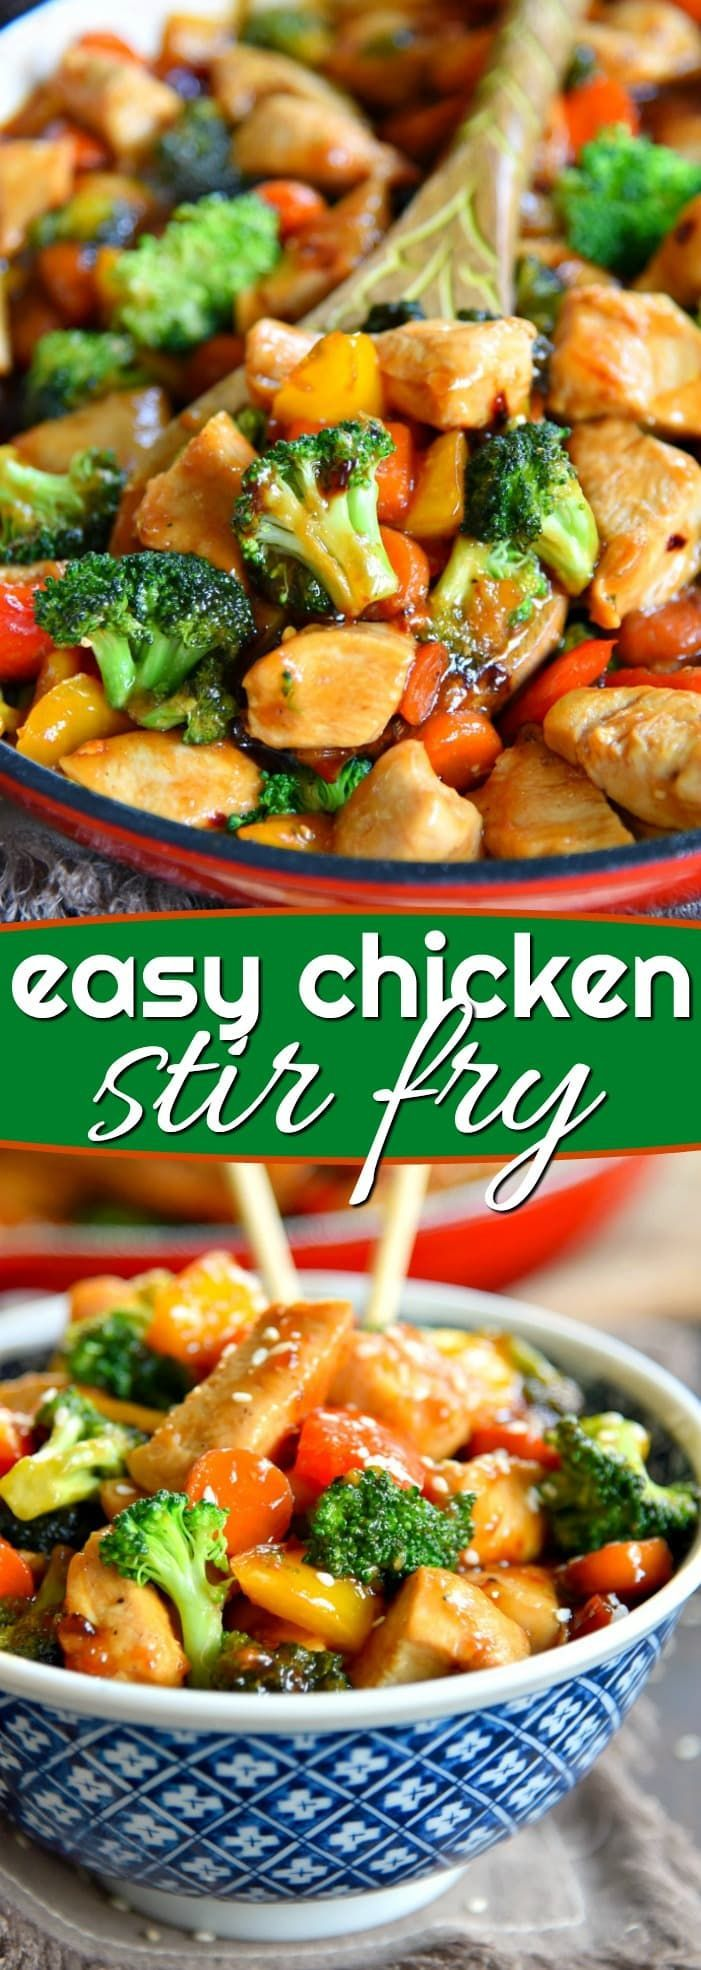 Easy Chicken Stir Fry Recipe - Mom On Timeout